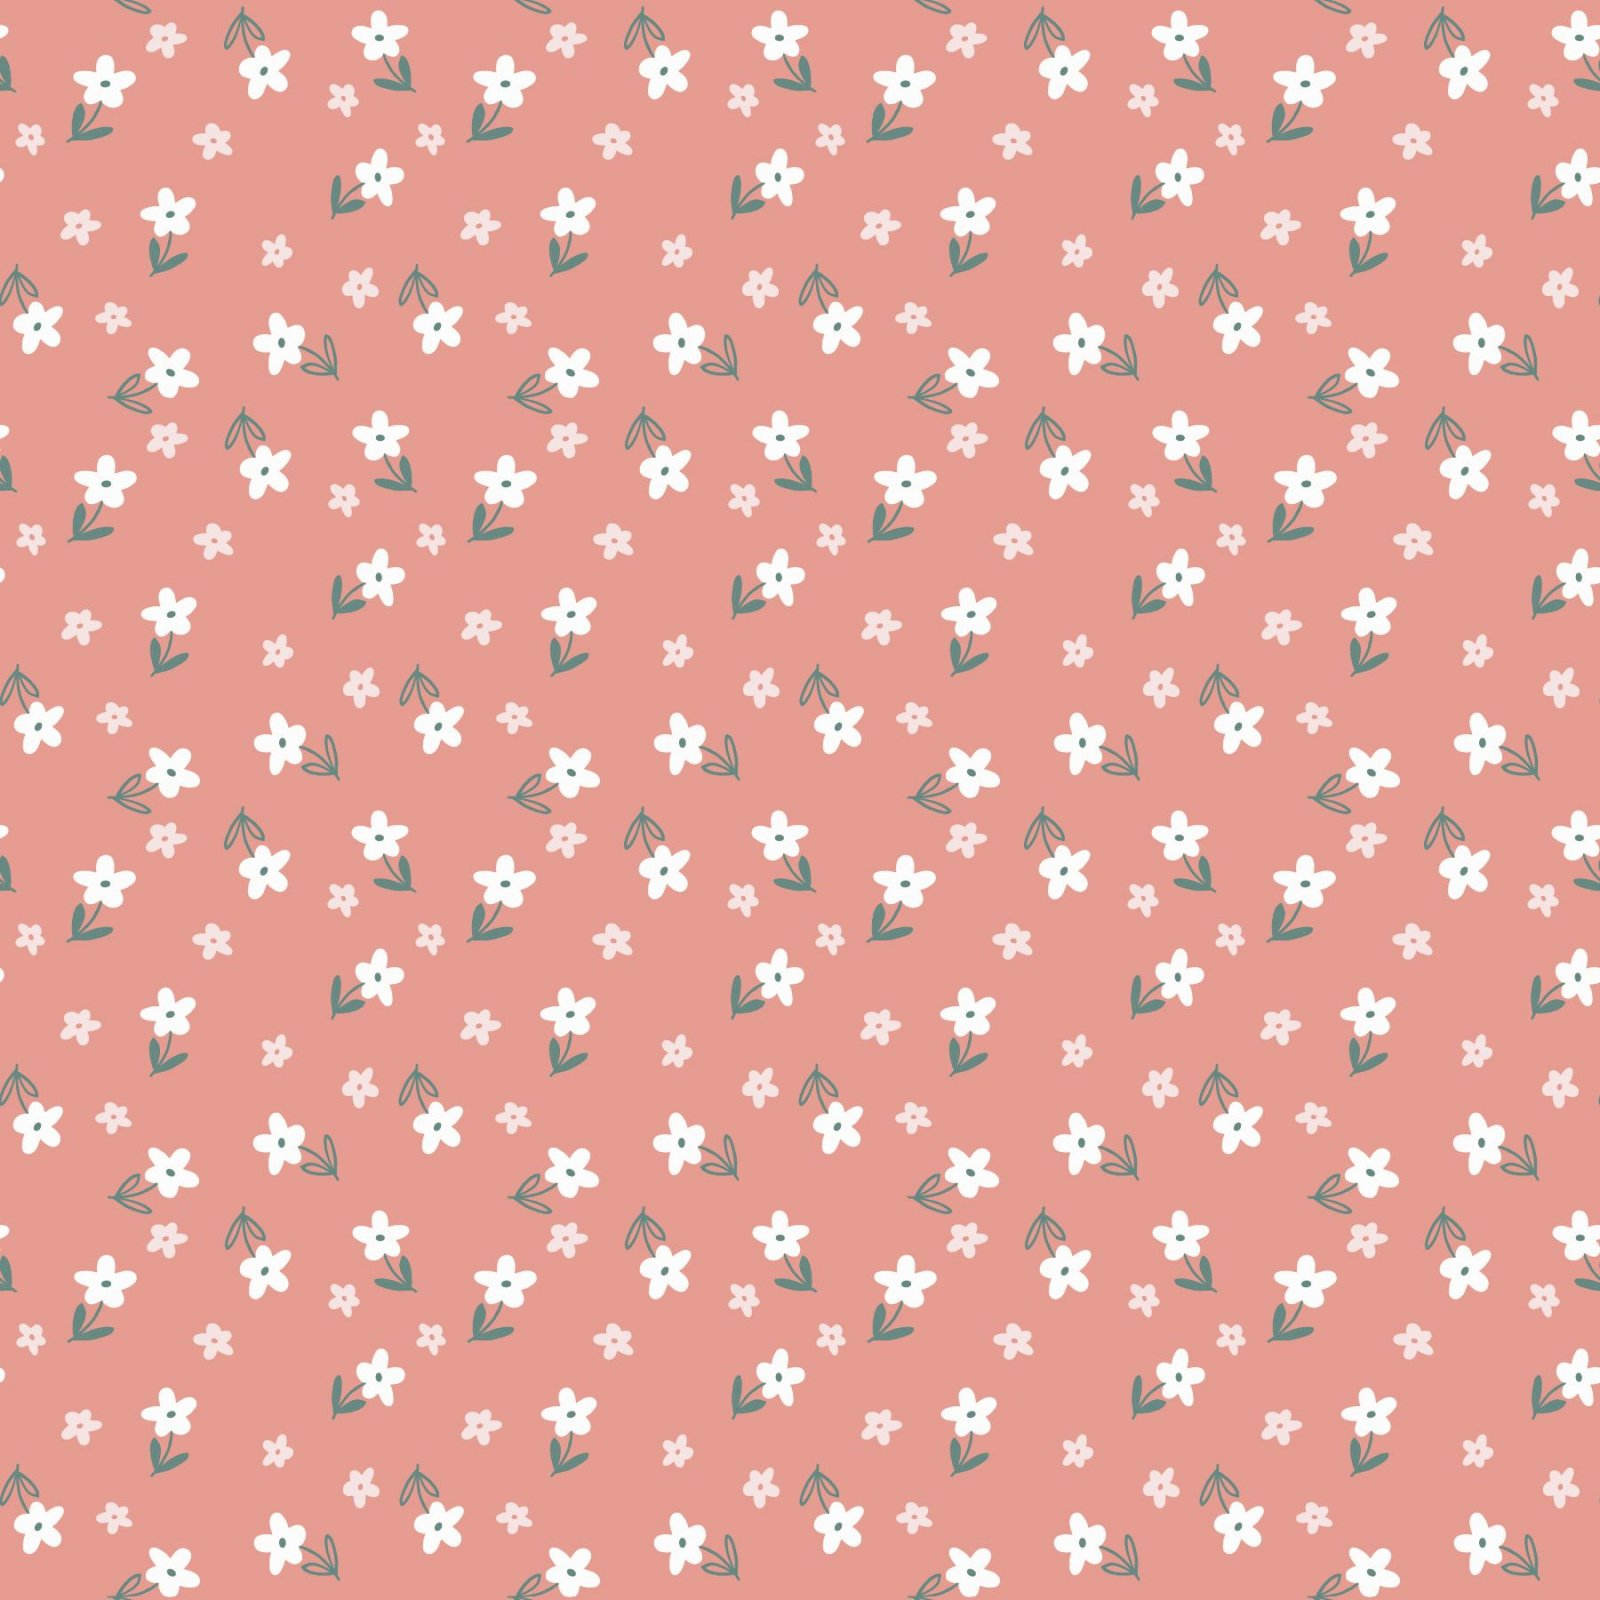 SE-Blossom & Grow 6100-22 Pink - Tiny Floral Toss